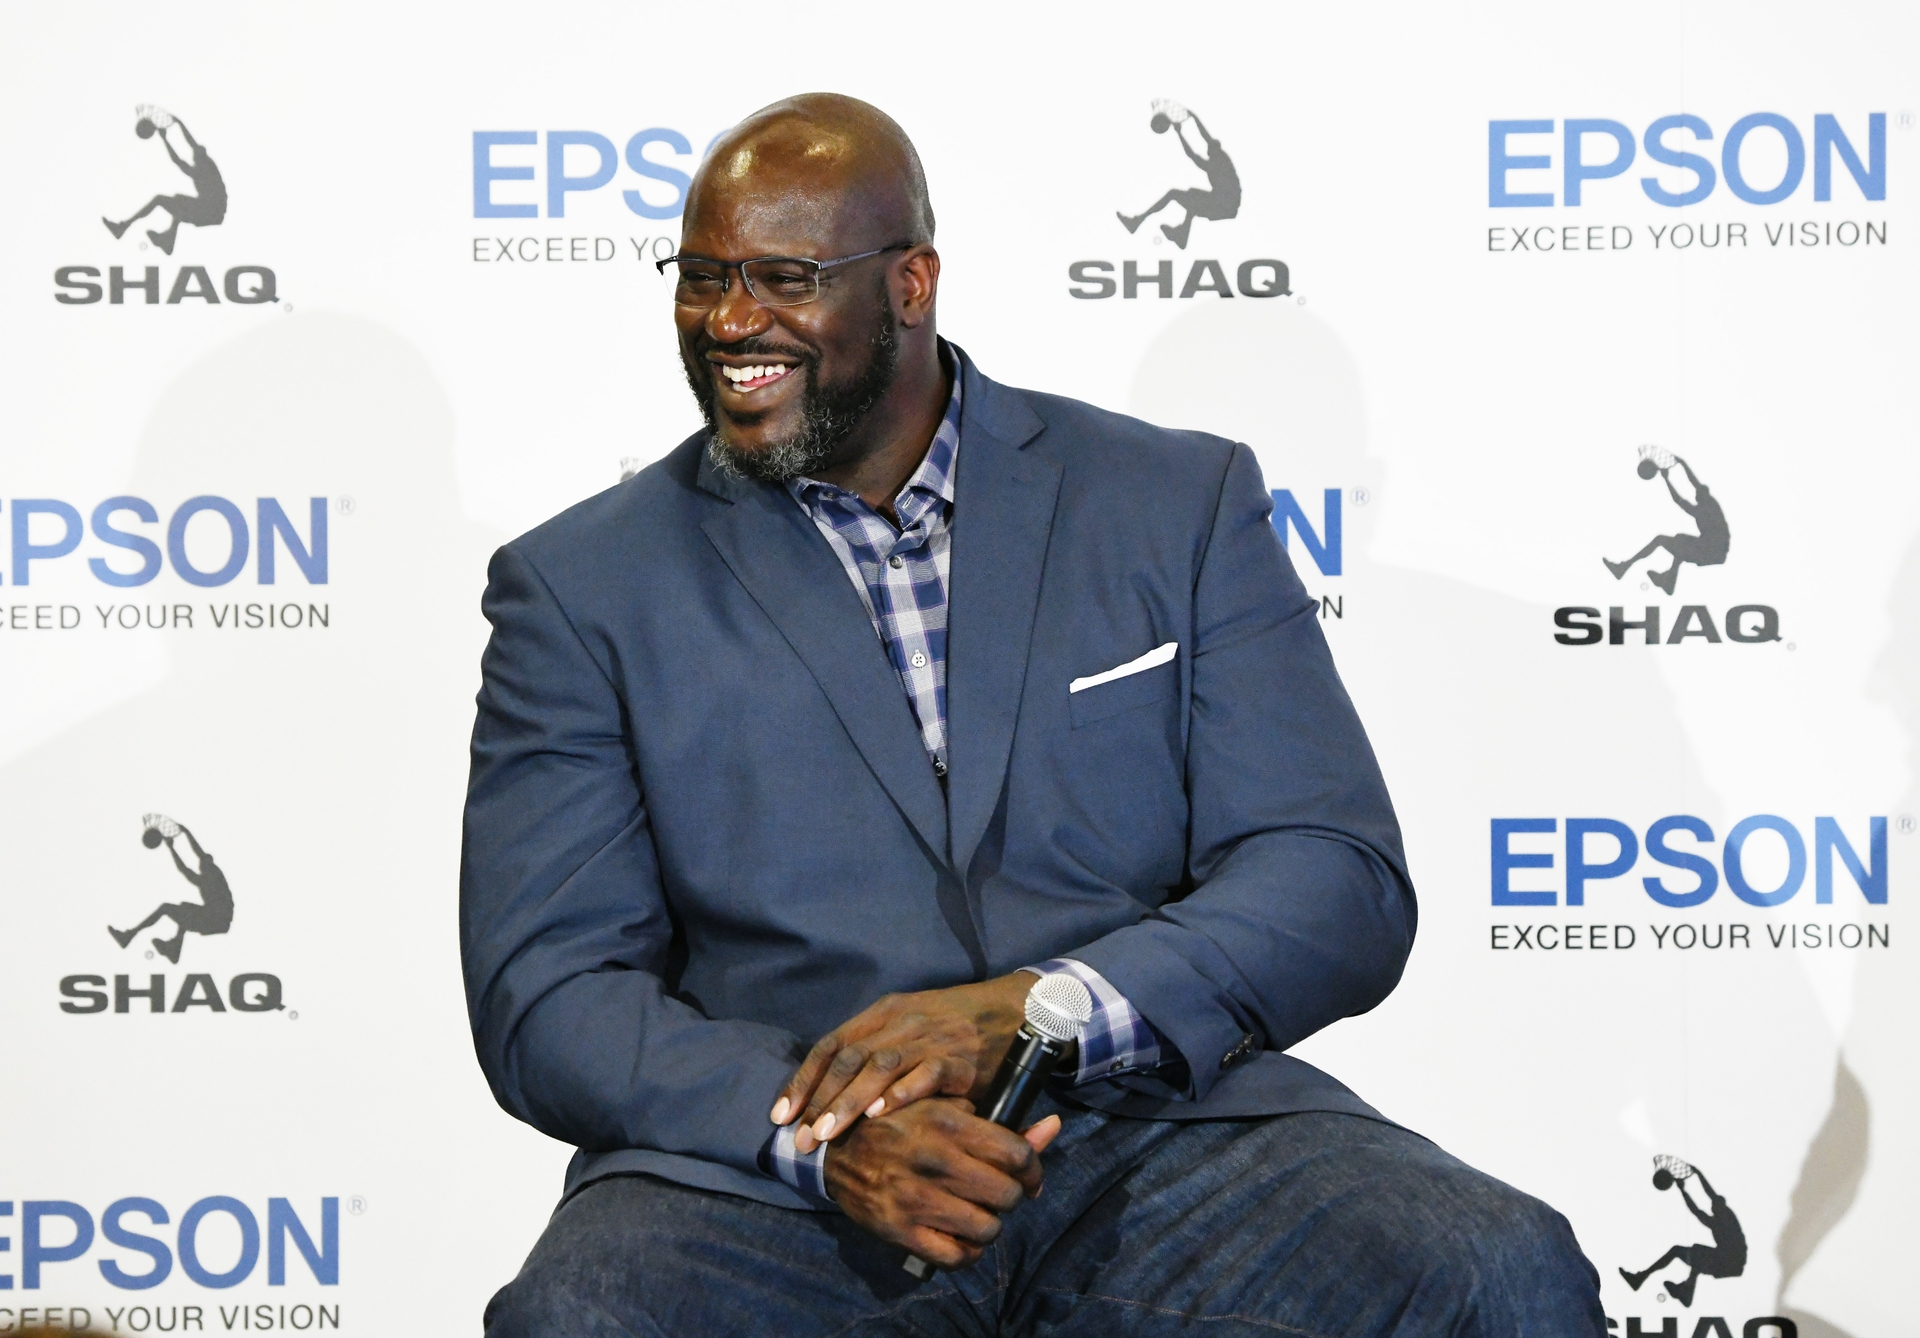 Epson July 9 Media Event_Shaquille ONeal_Image 2